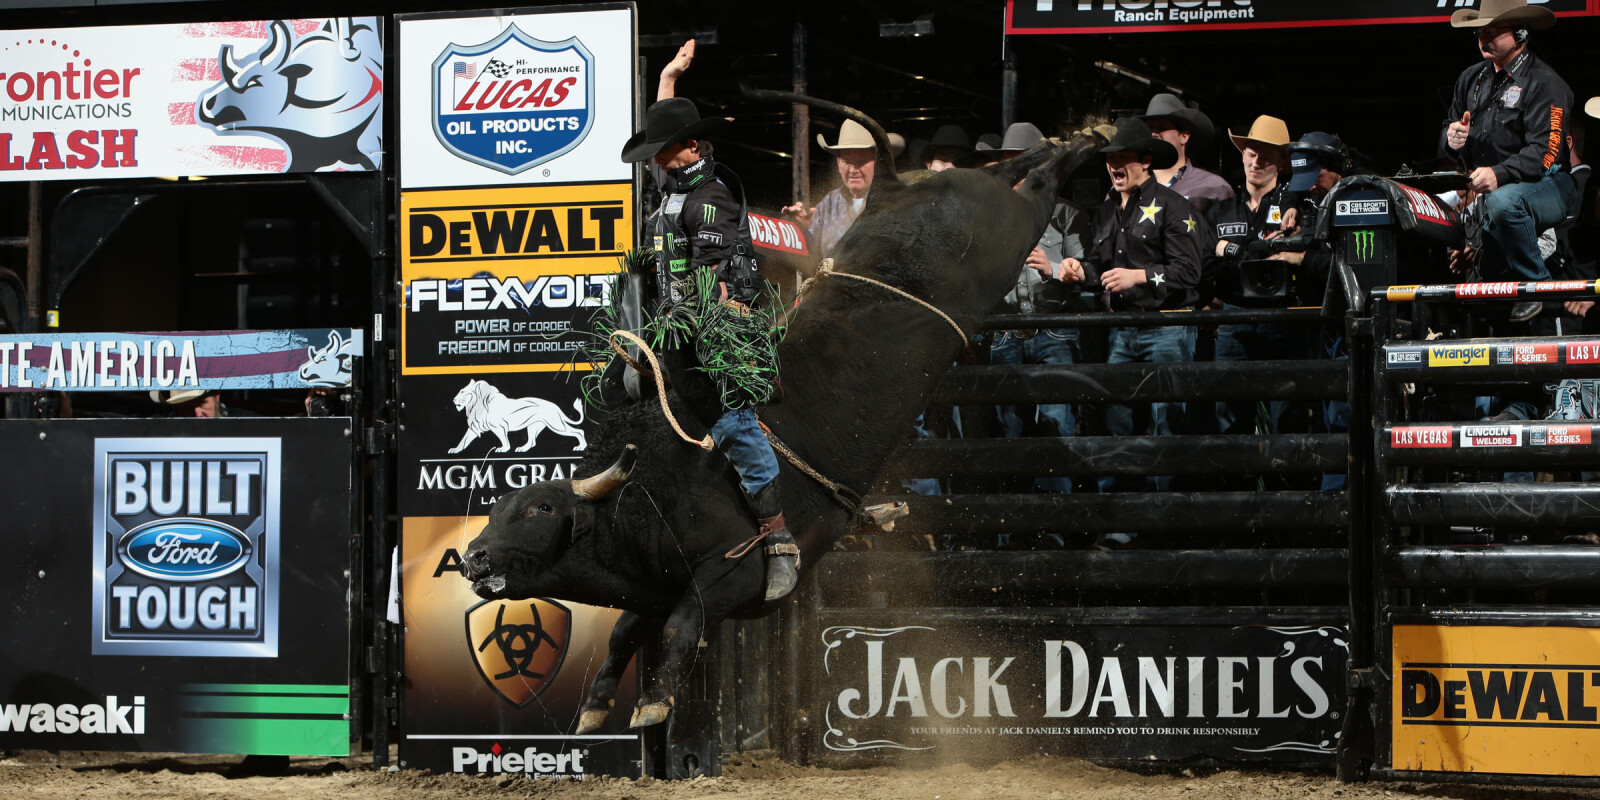 JB Mauney rides D&H Cattle/Barthold/Gordon/Dunn/Duckwall's All Aboard for 87 during the second round of the Sacramento Built Ford Tough series PBR